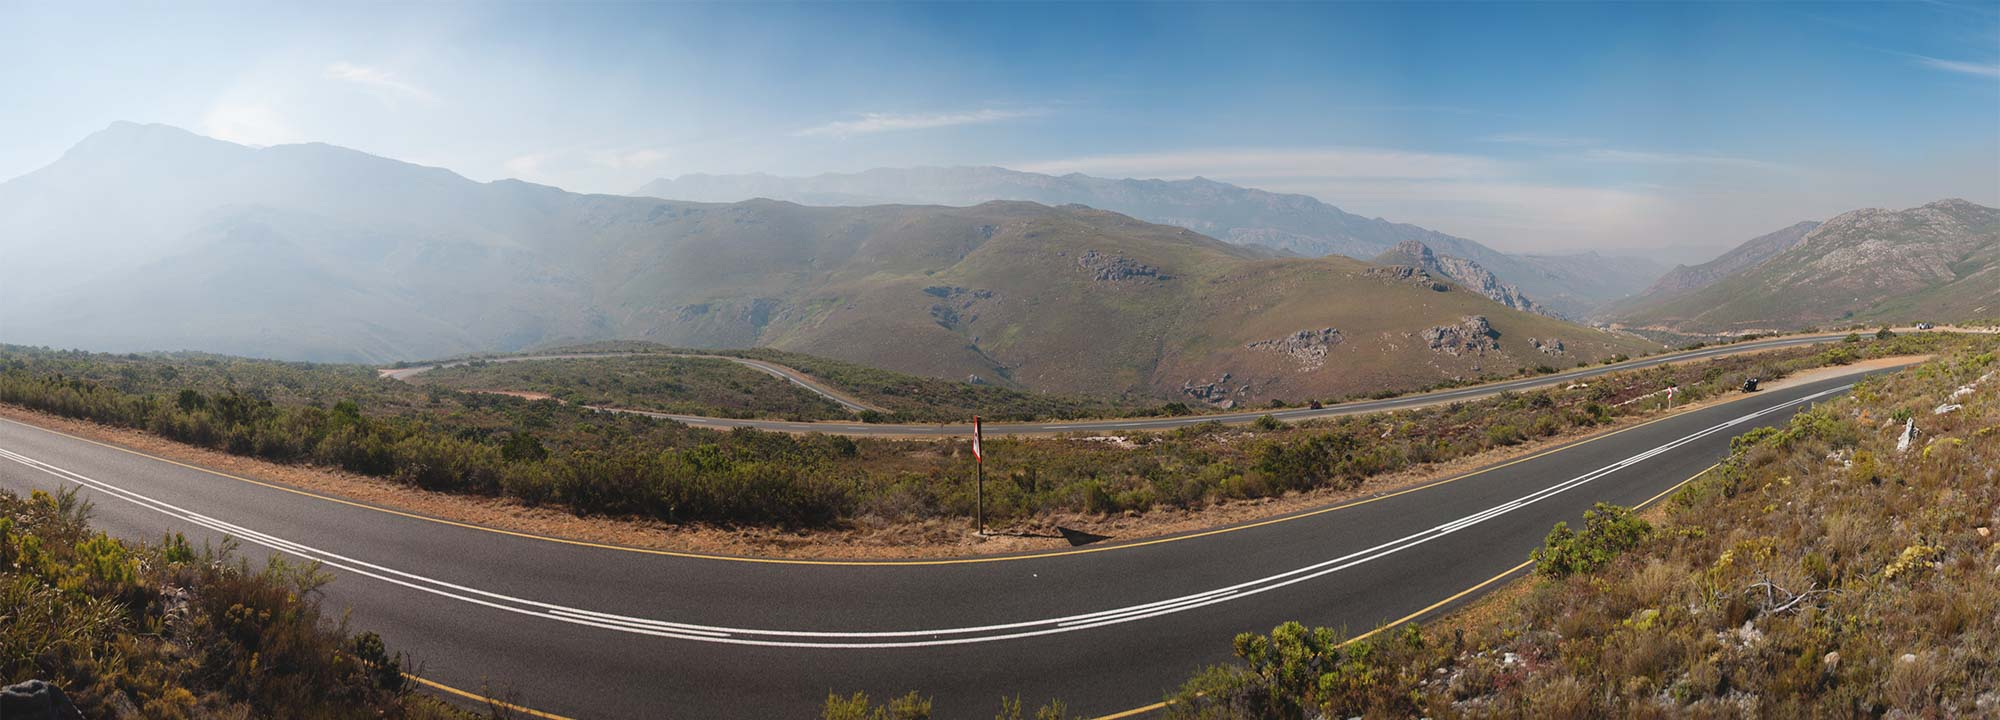 franschhoek-pass-wolf-moto-motorcycle-wide-angle-corners